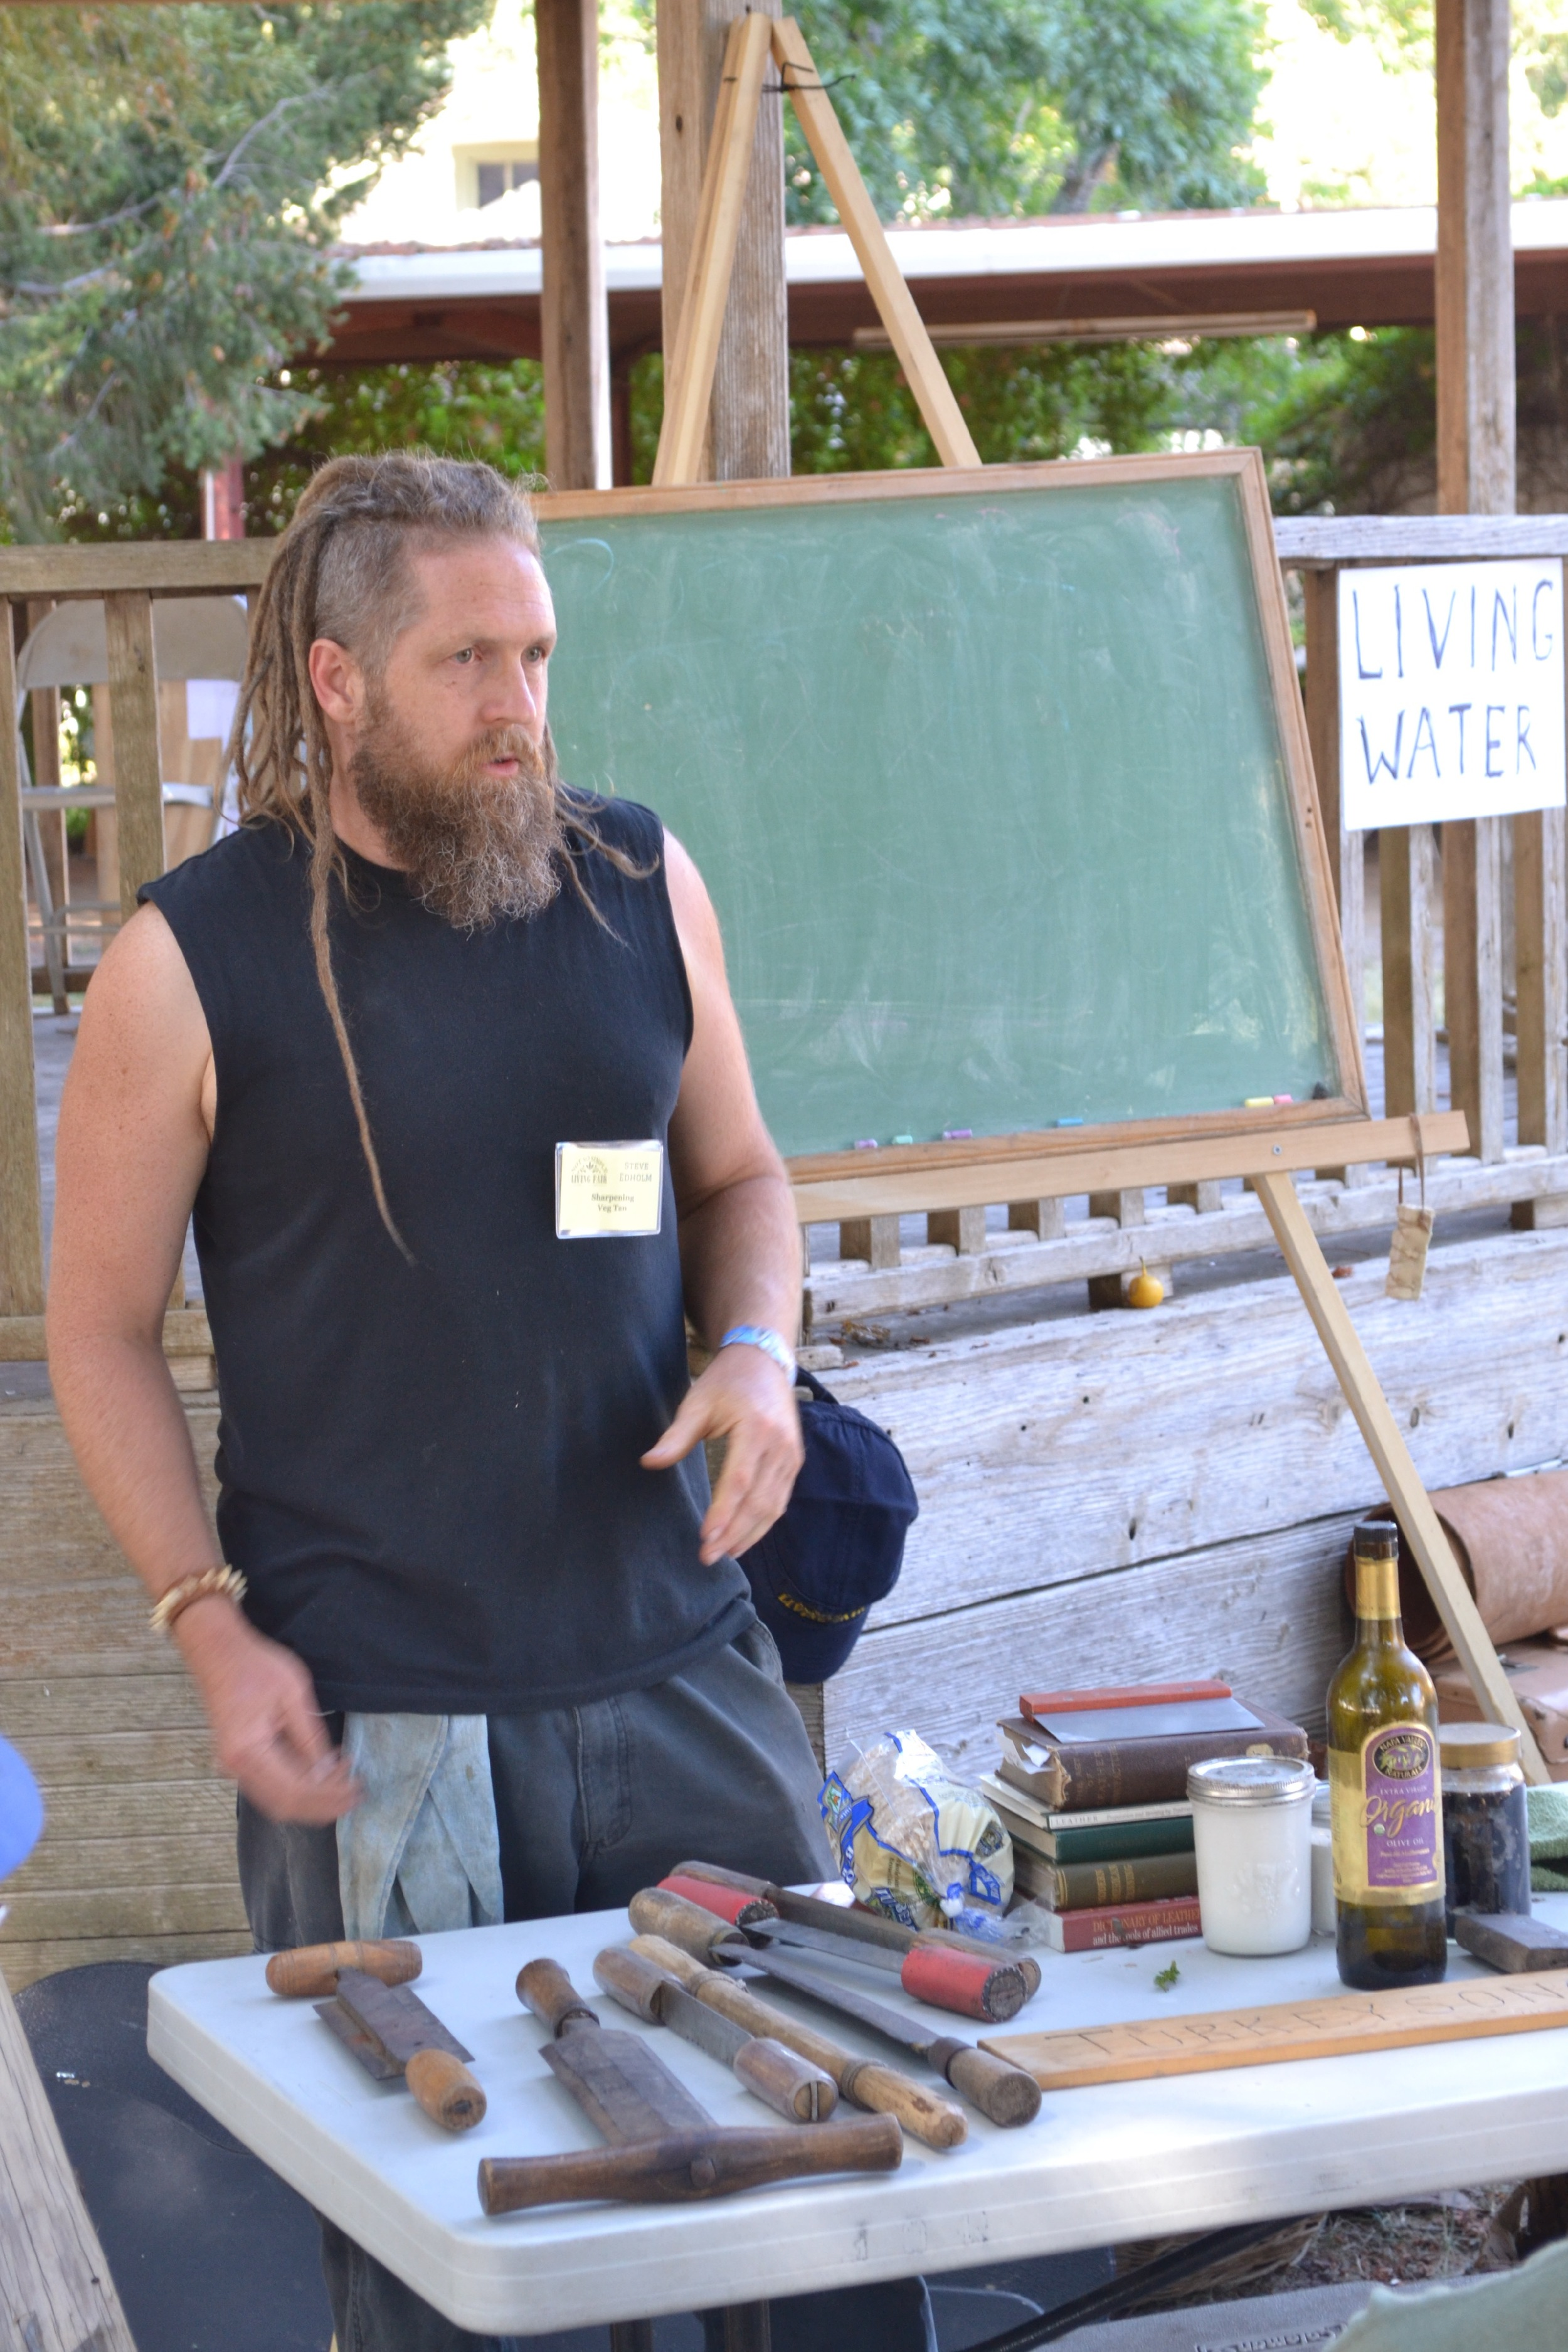 Teaching hide tanning stuff at the Not So Simple Living Fair in Boonville California. This fair is great, teaching skills for self reliance.